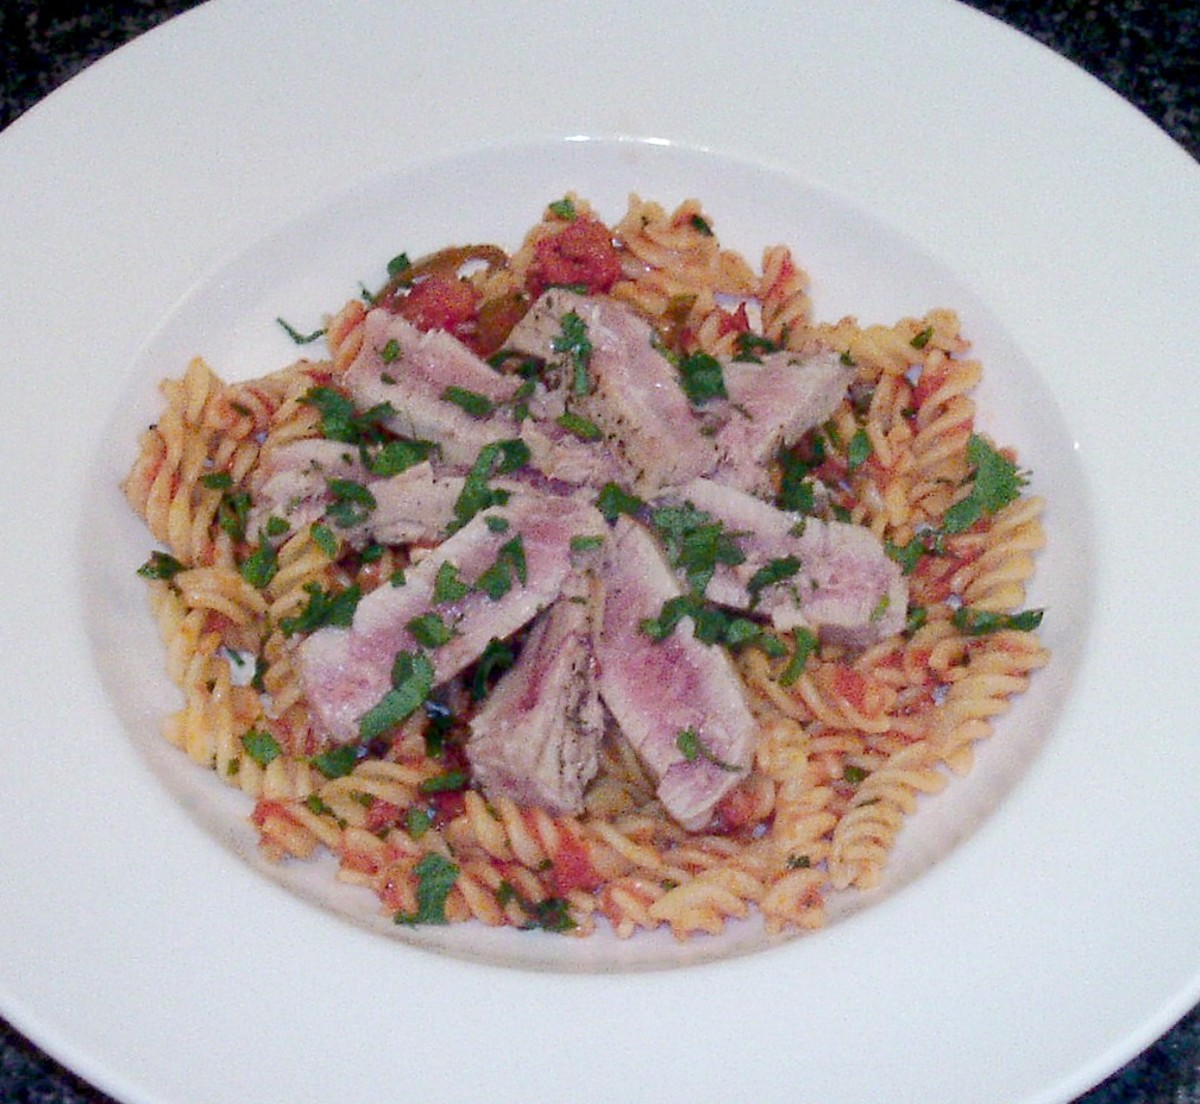 Tuna loin fillet is seared, sliced and served on a bed of fusilli pasta in a spicy tomato sauce